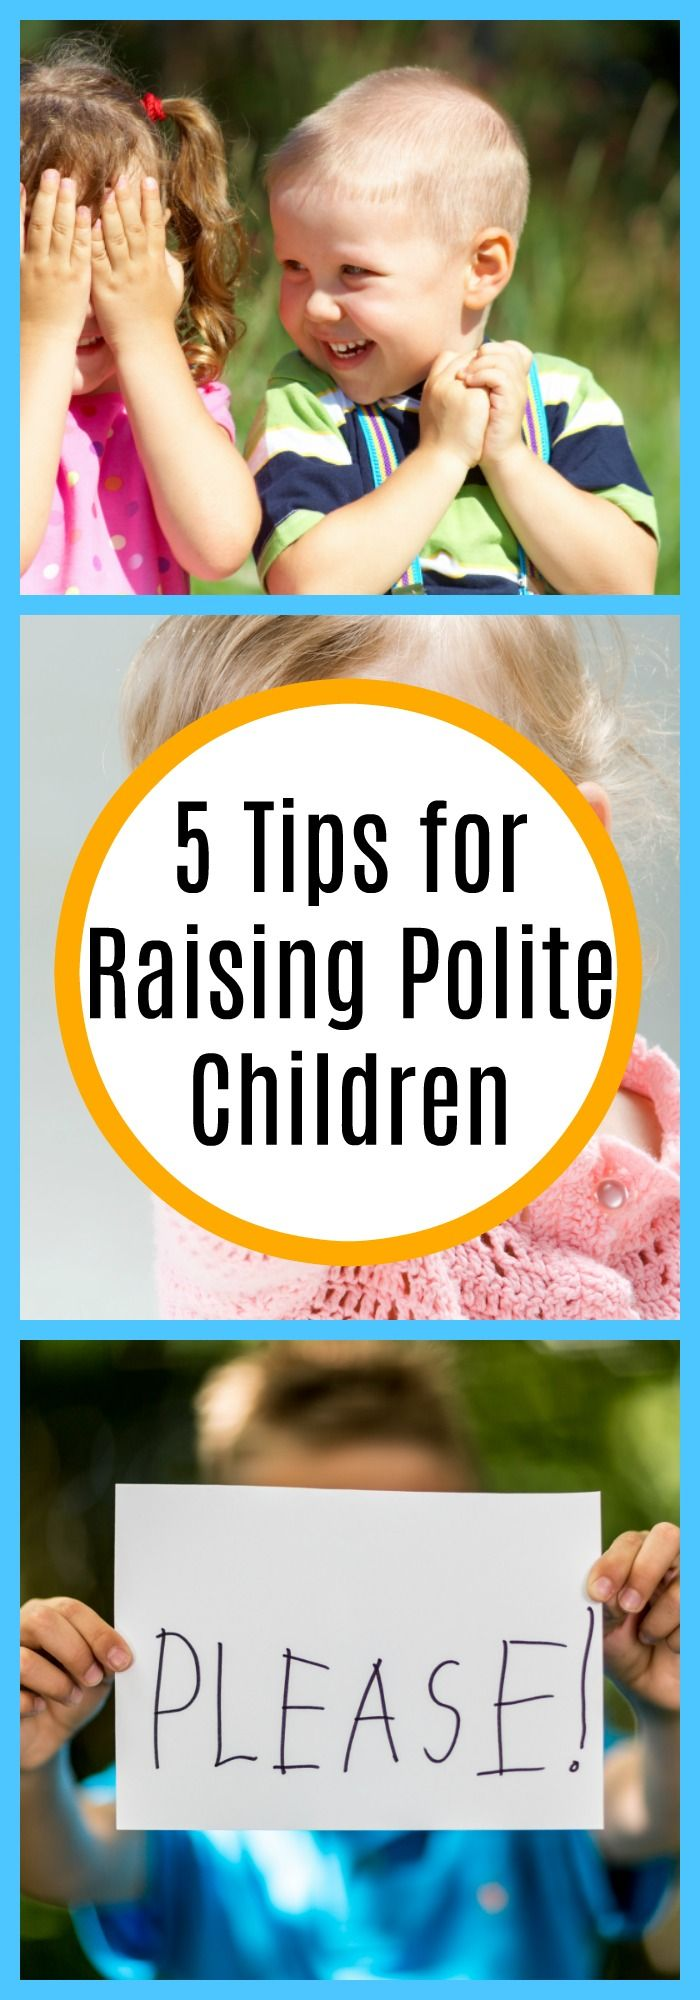 Parenting--5 Tips for Raising Polite Children--The Organized Mom